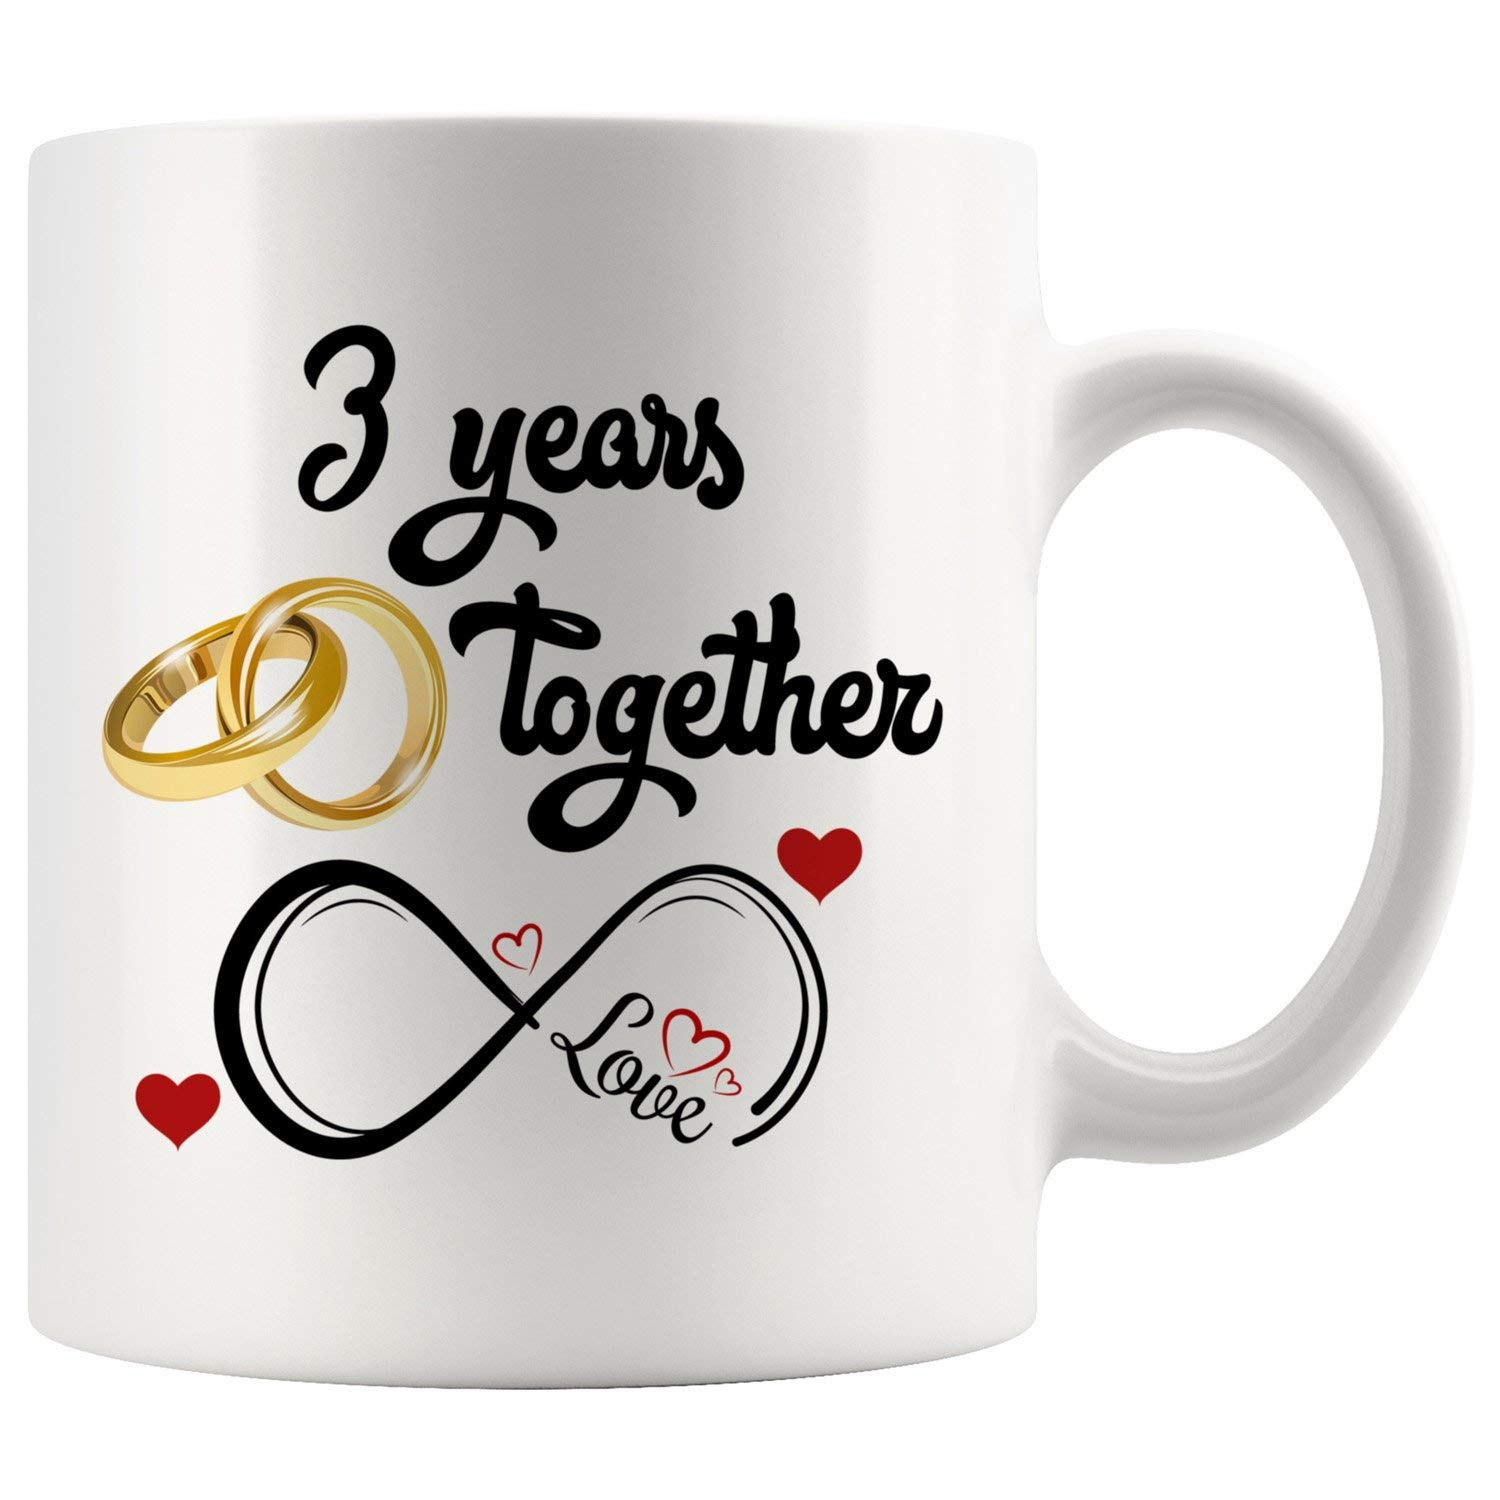 3rd Wedding Anniversary Gift For Him And Her, 3rd Anniversary Gifts For Her Him, Third Anniversary Mug For Husband & Wife, 3 Years Together, Married 3 Years, 3 Years Couple (11 oz)